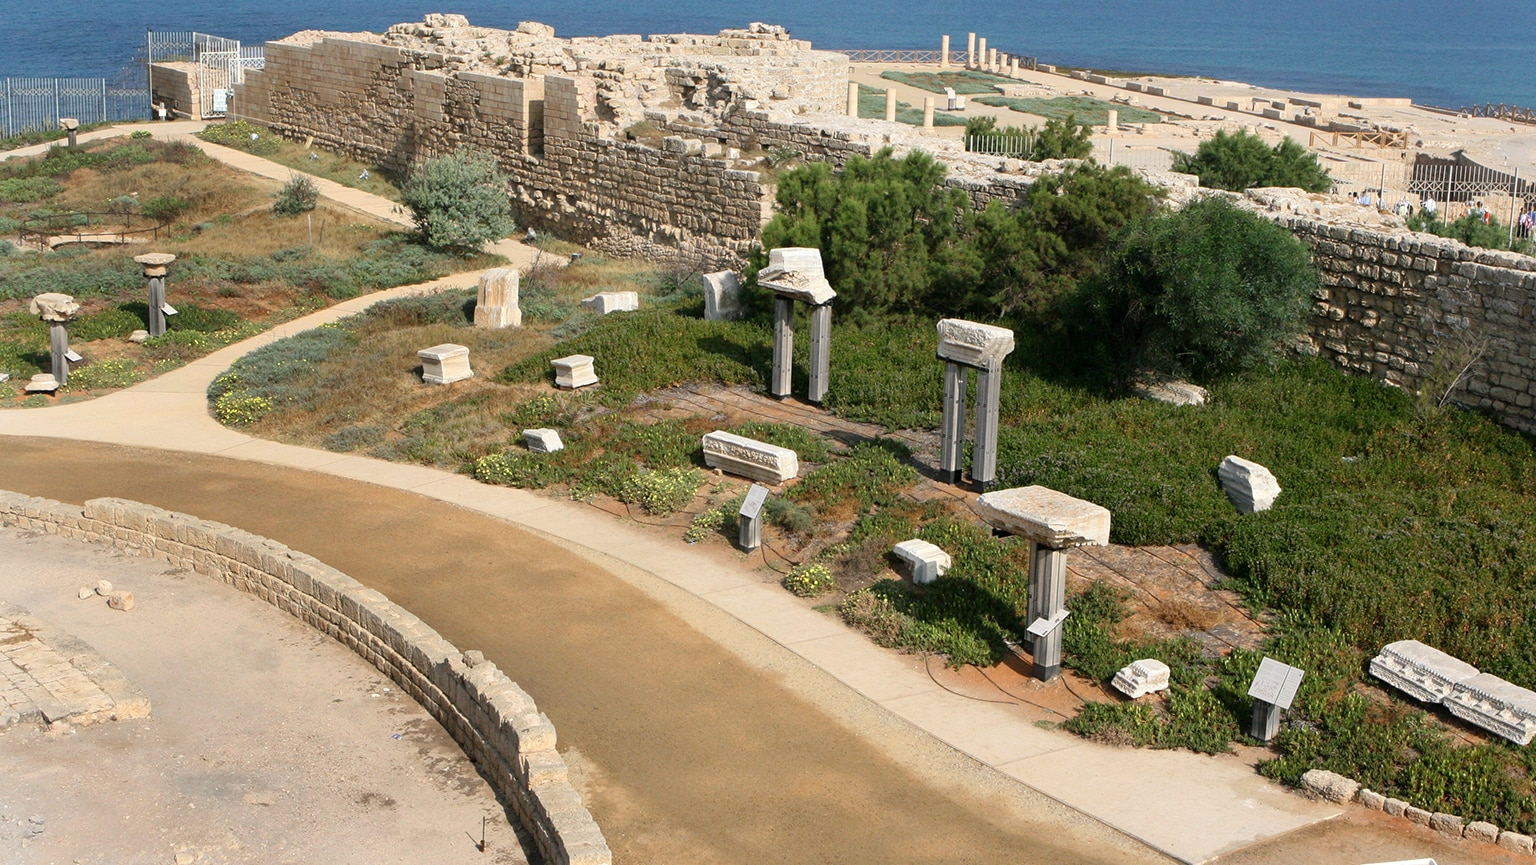 Caesarea Maritima—Harbor and Showcase City